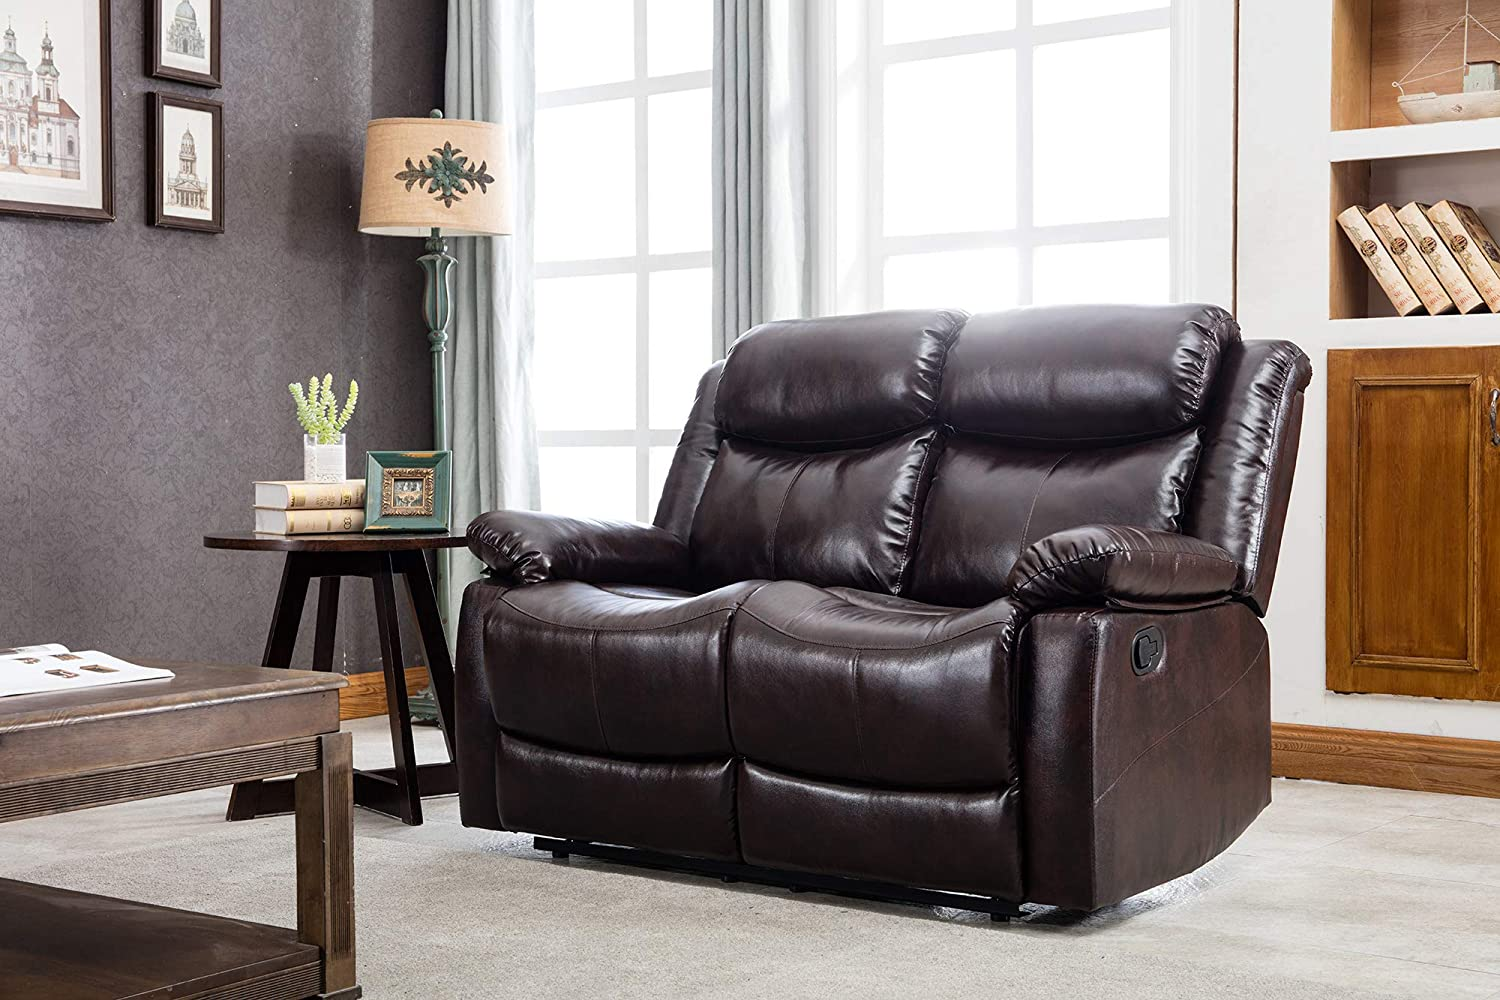 Harper Bright Designs Brown Leather Couch Loveseat Sofa Reclining Sofa Chair Classic Recliner Sofa Couches for Living Room 530lbs Capacity